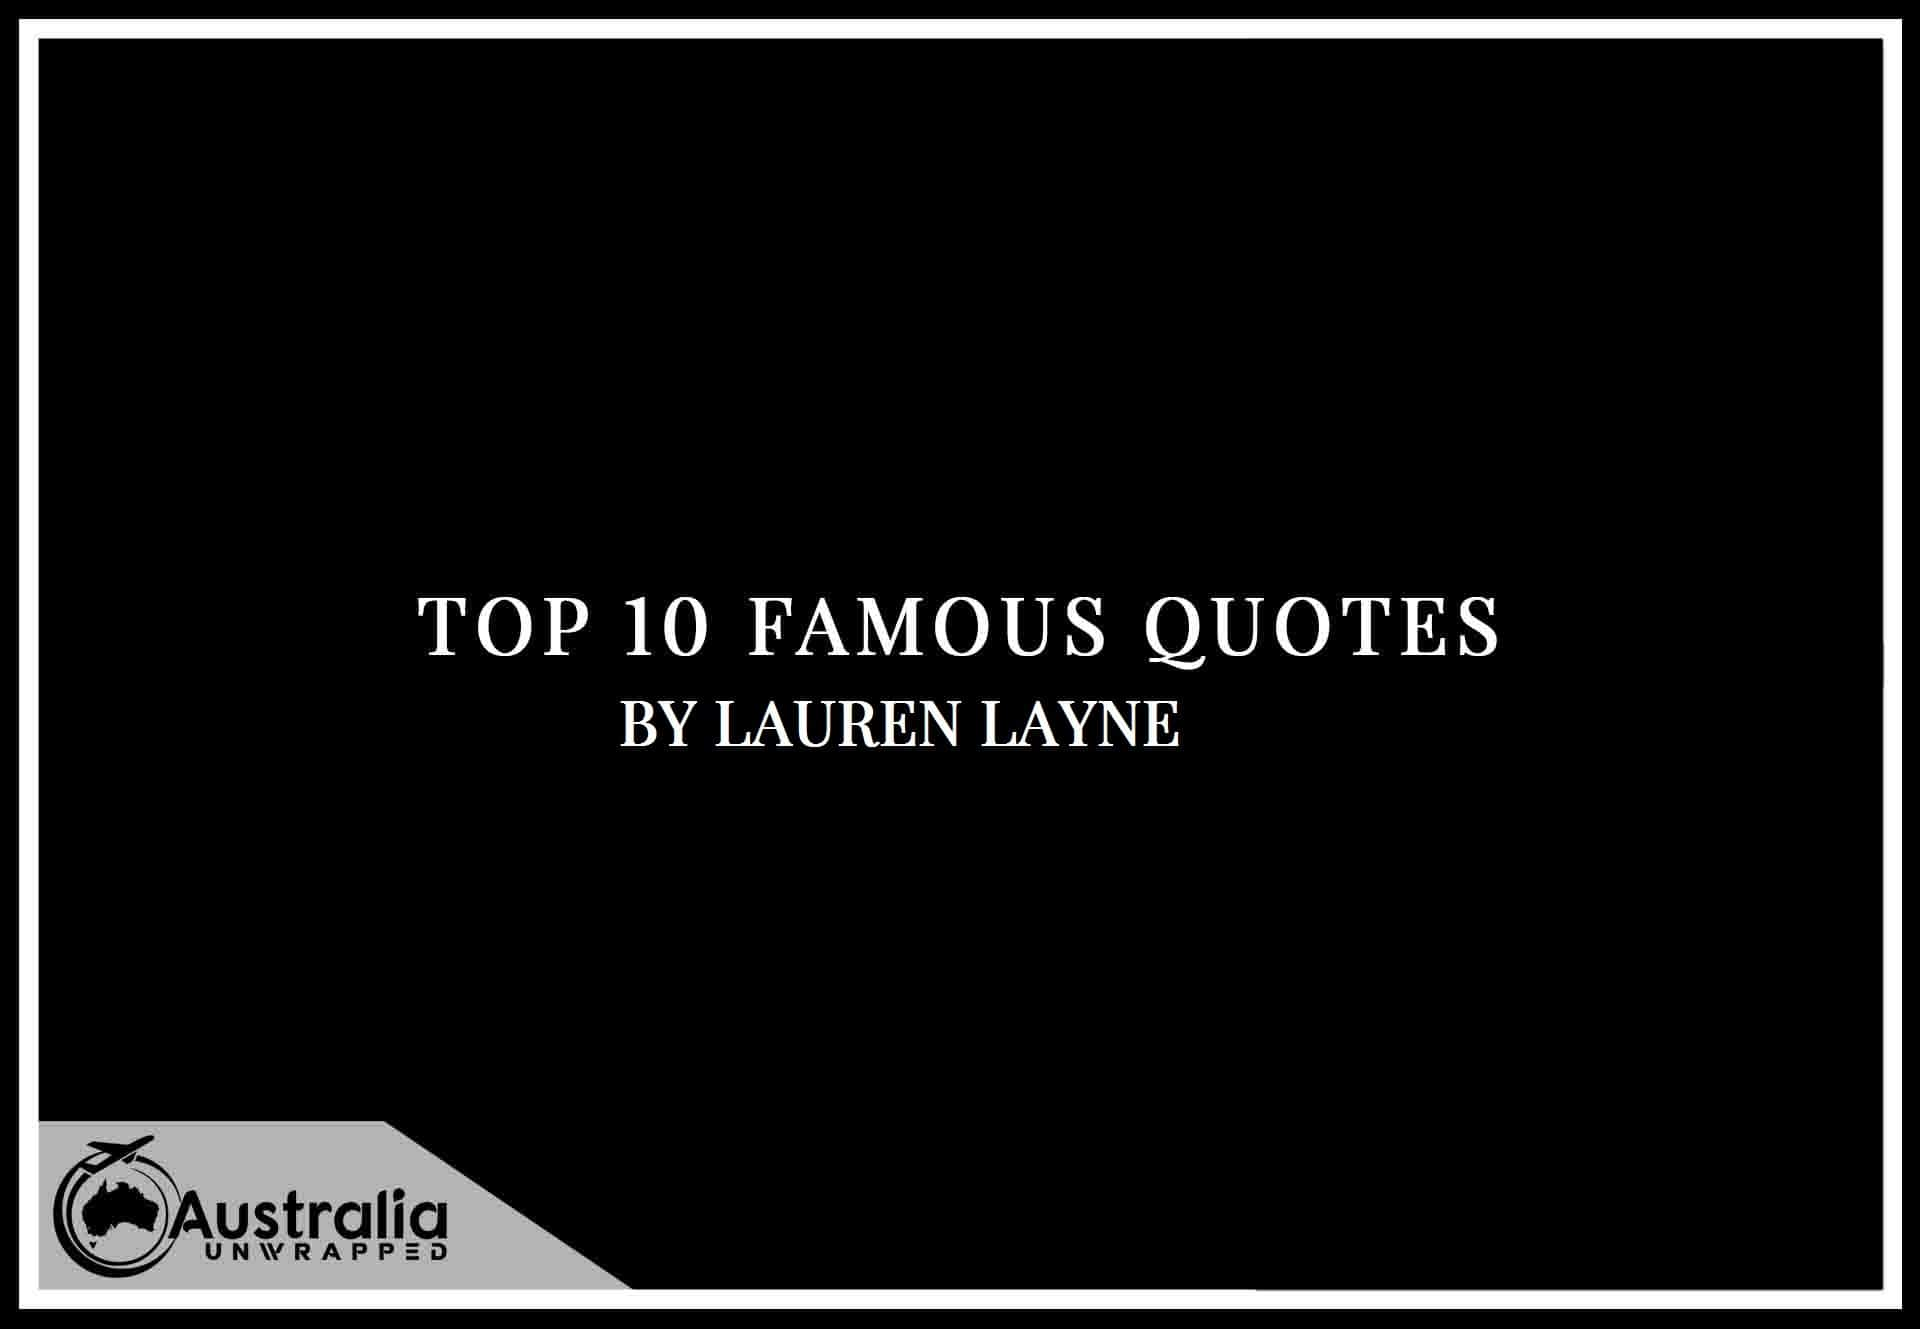 Lauren Layne's Top 10 Popular and Famous Quotes